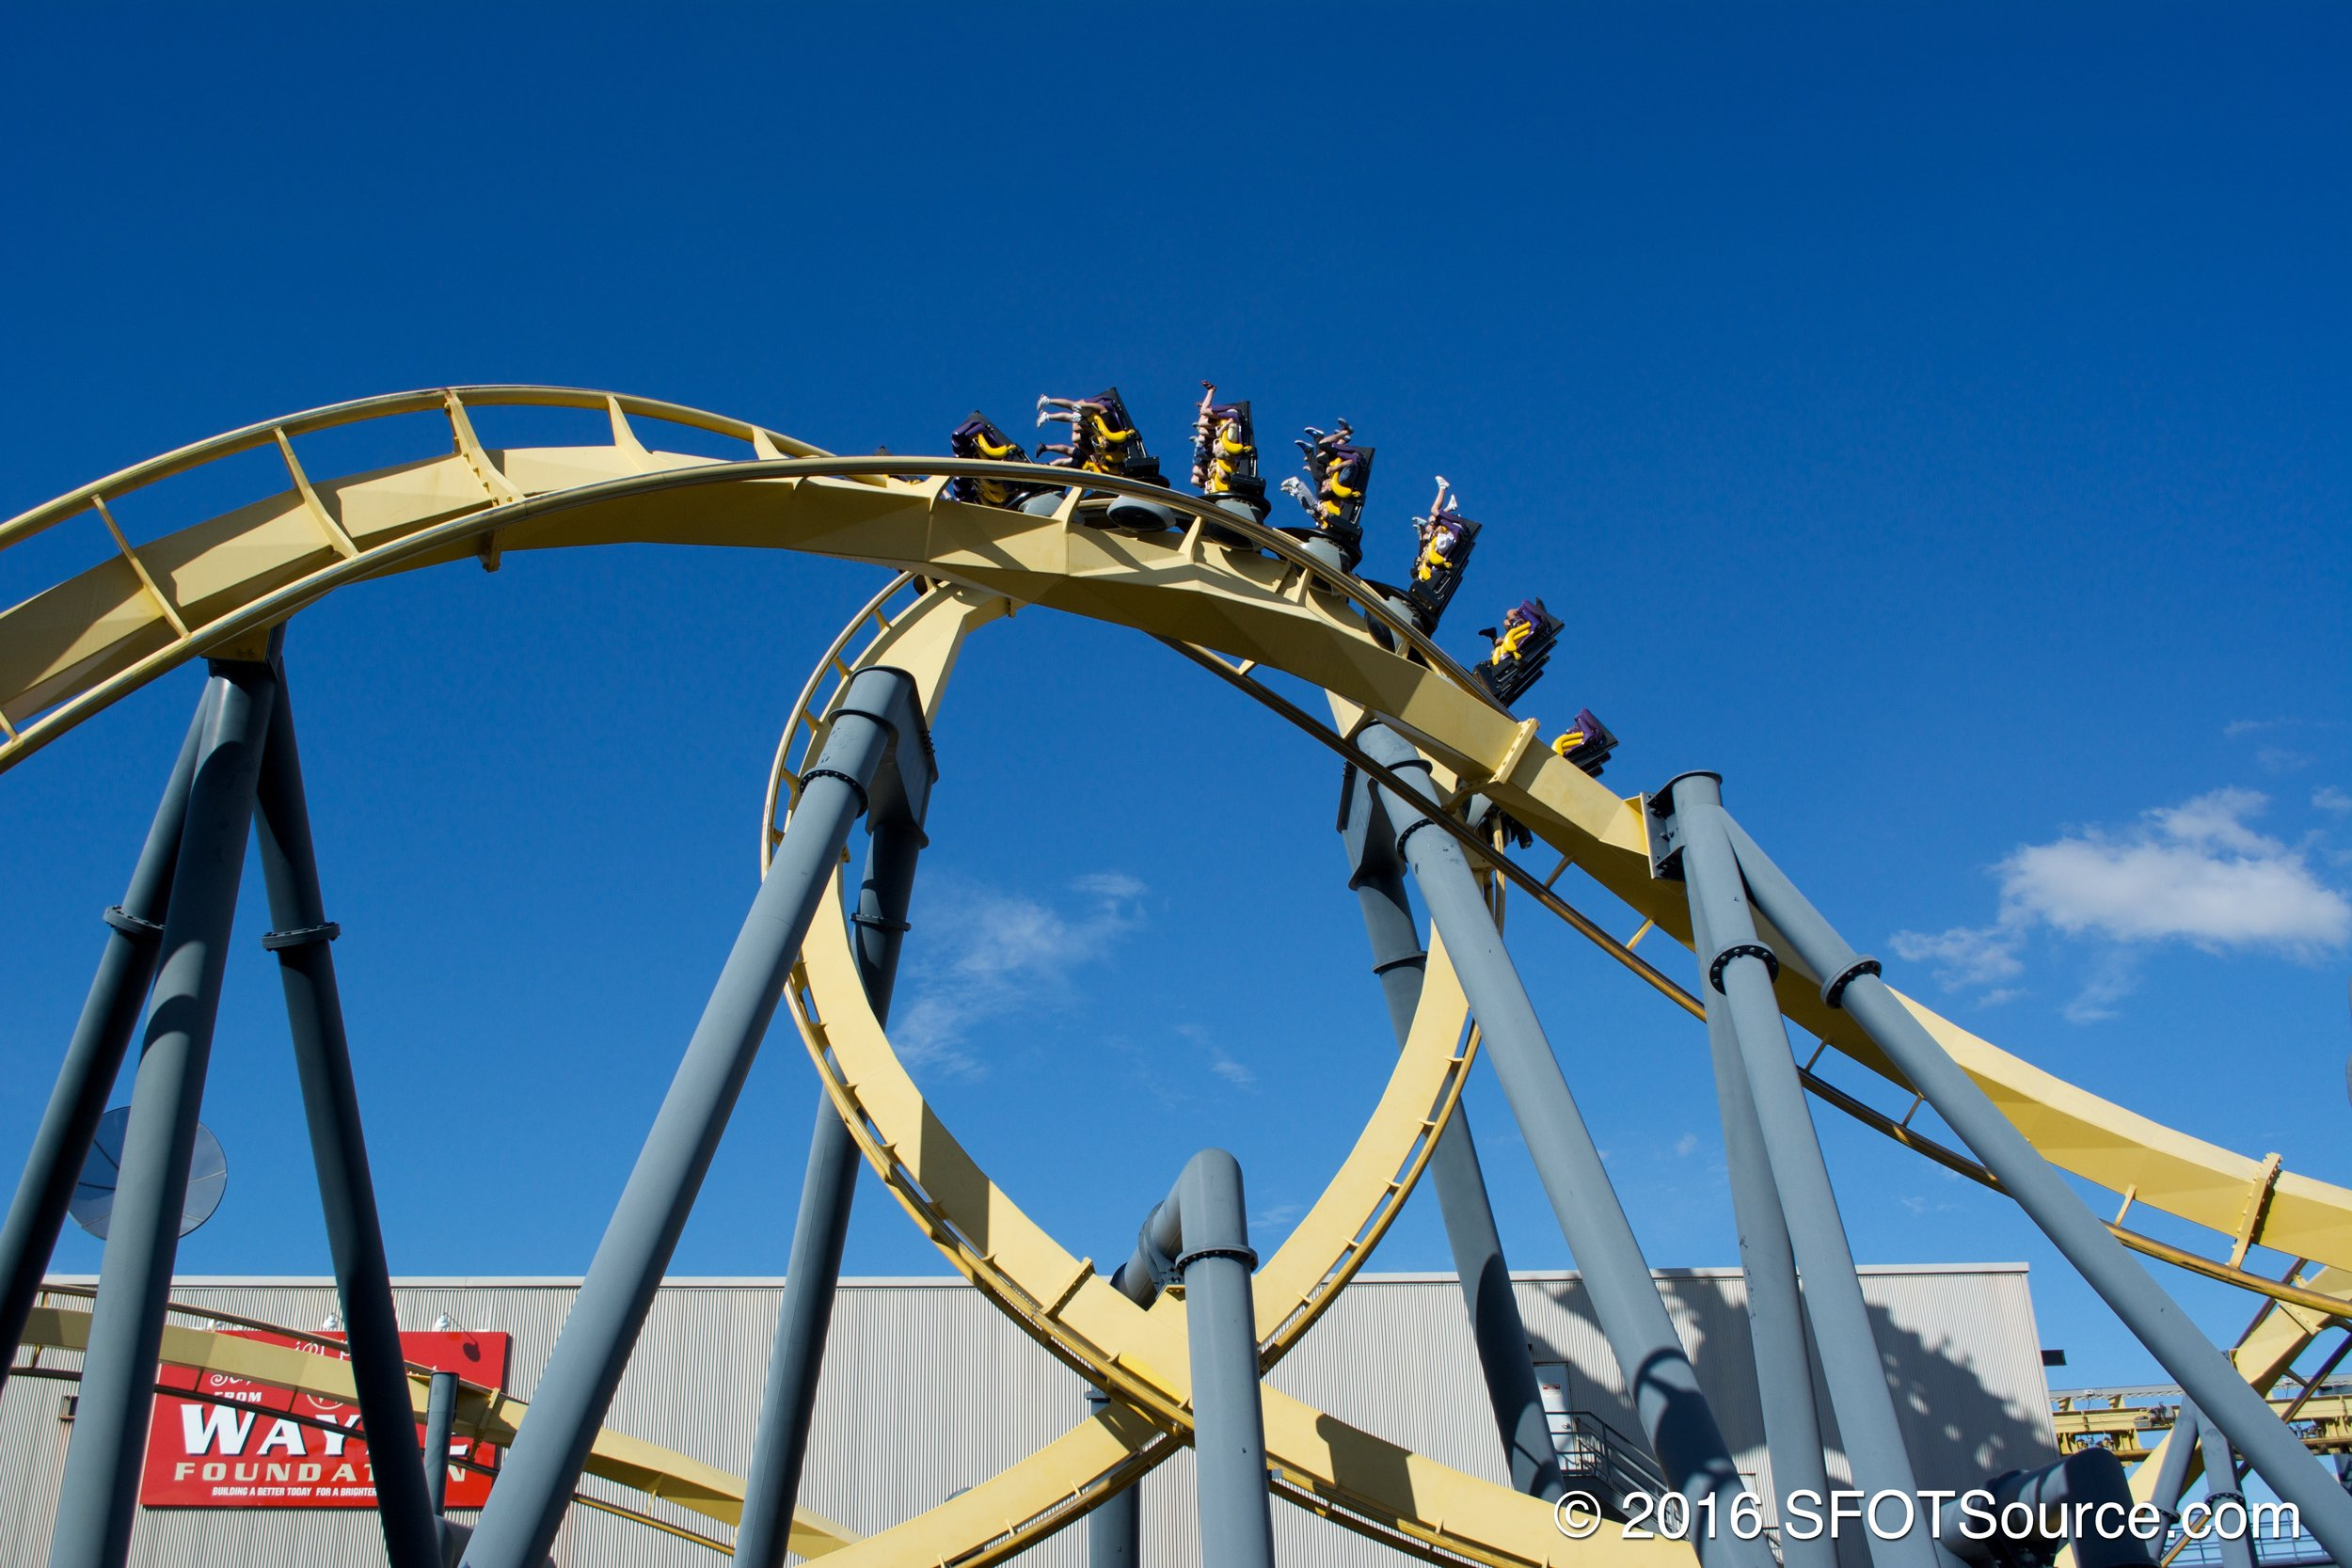 Batman: The Ride is an inverted coaster.